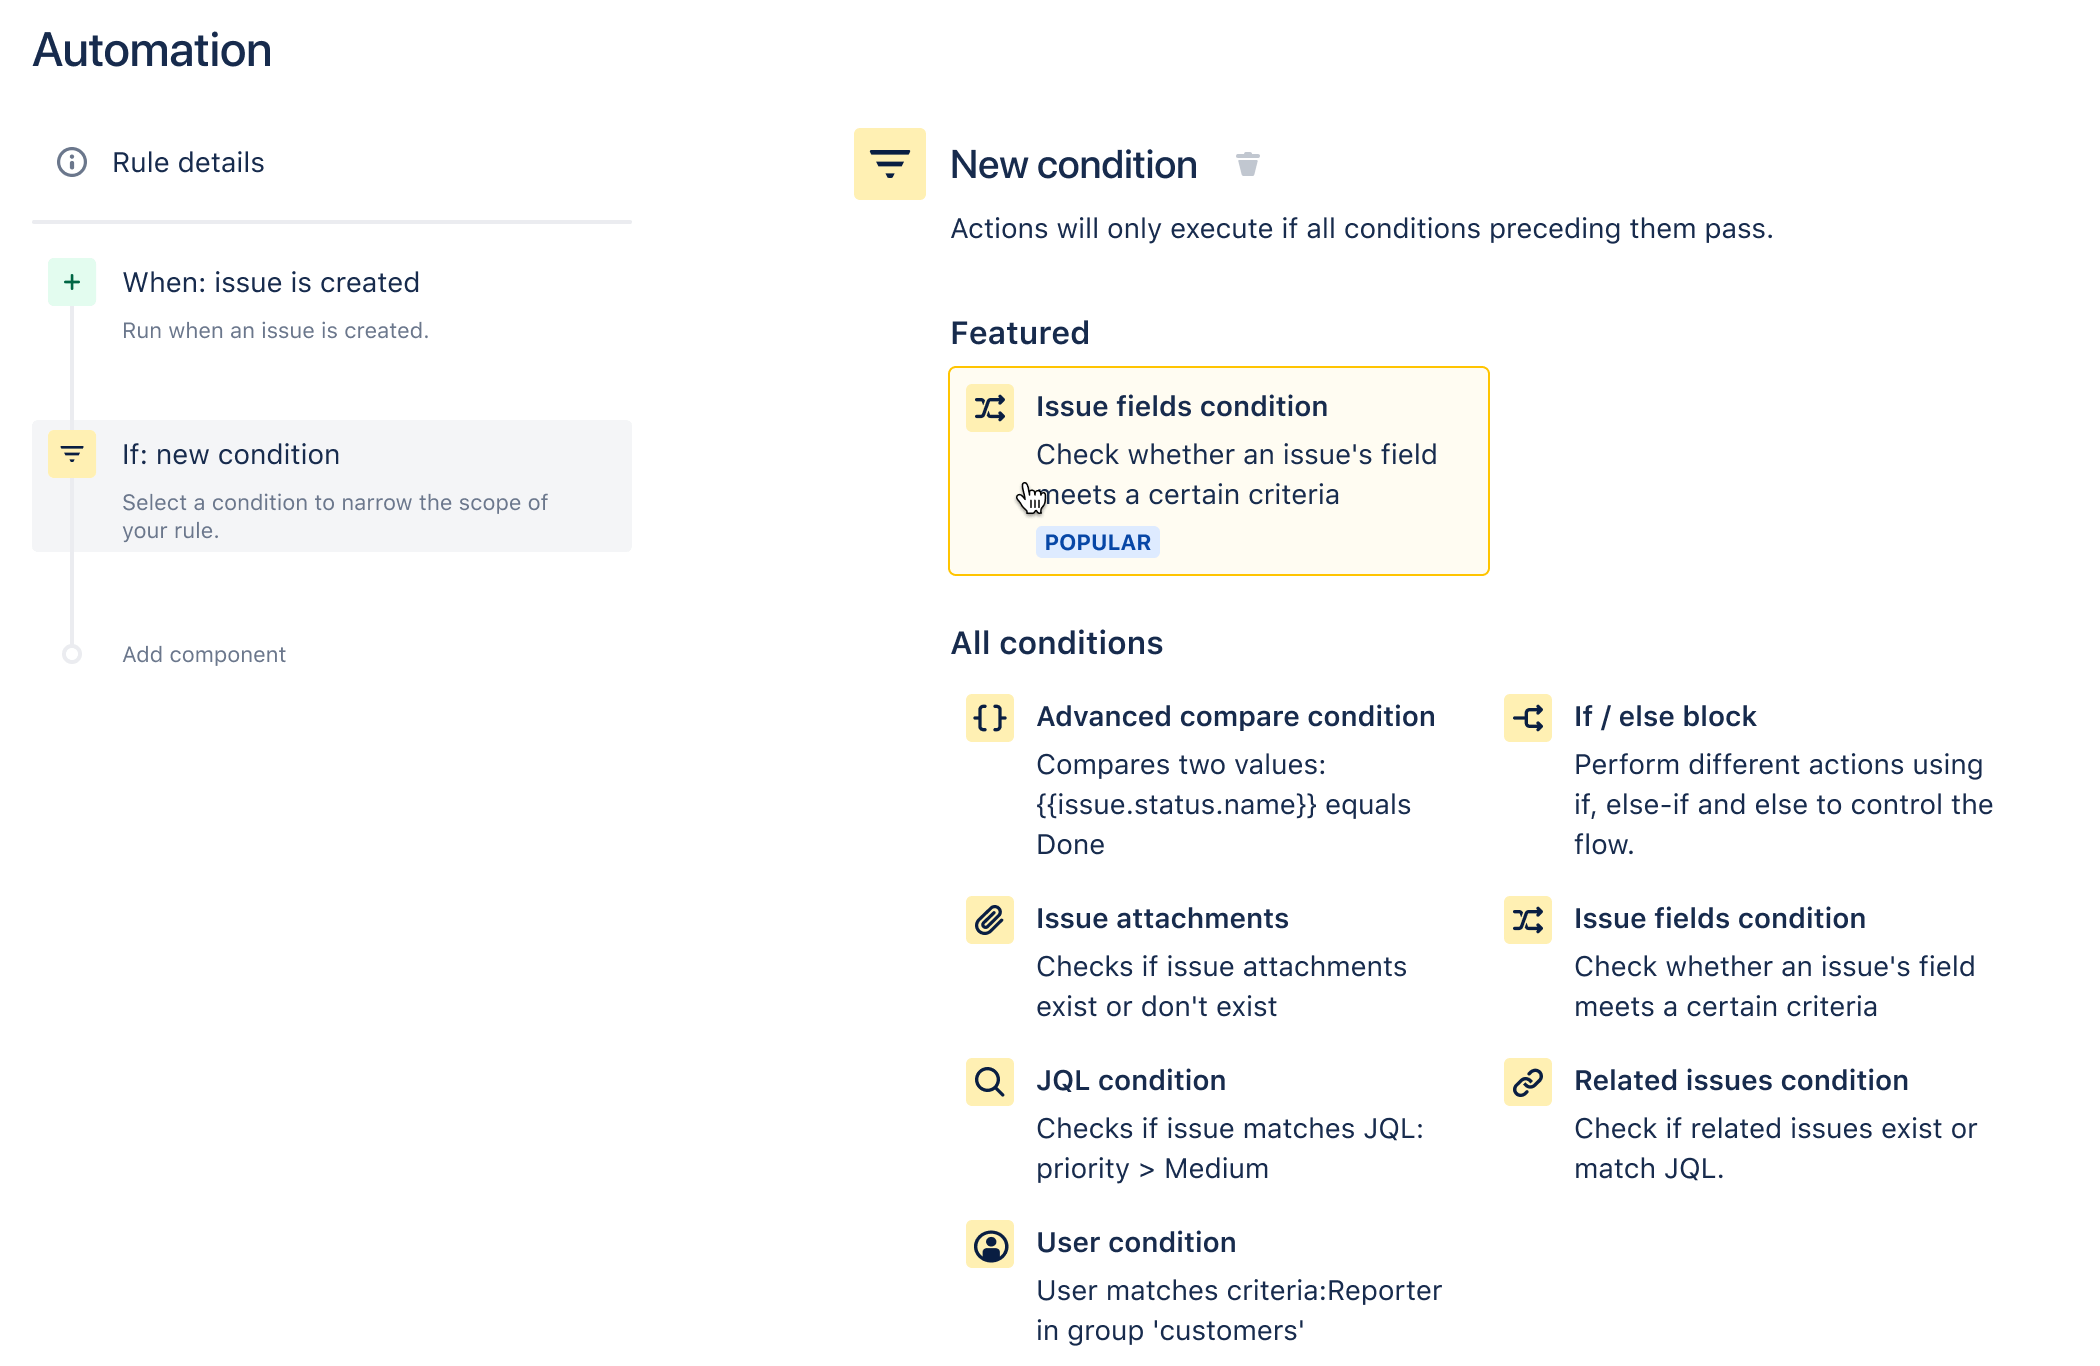 The list of conditions available when creating a rule.